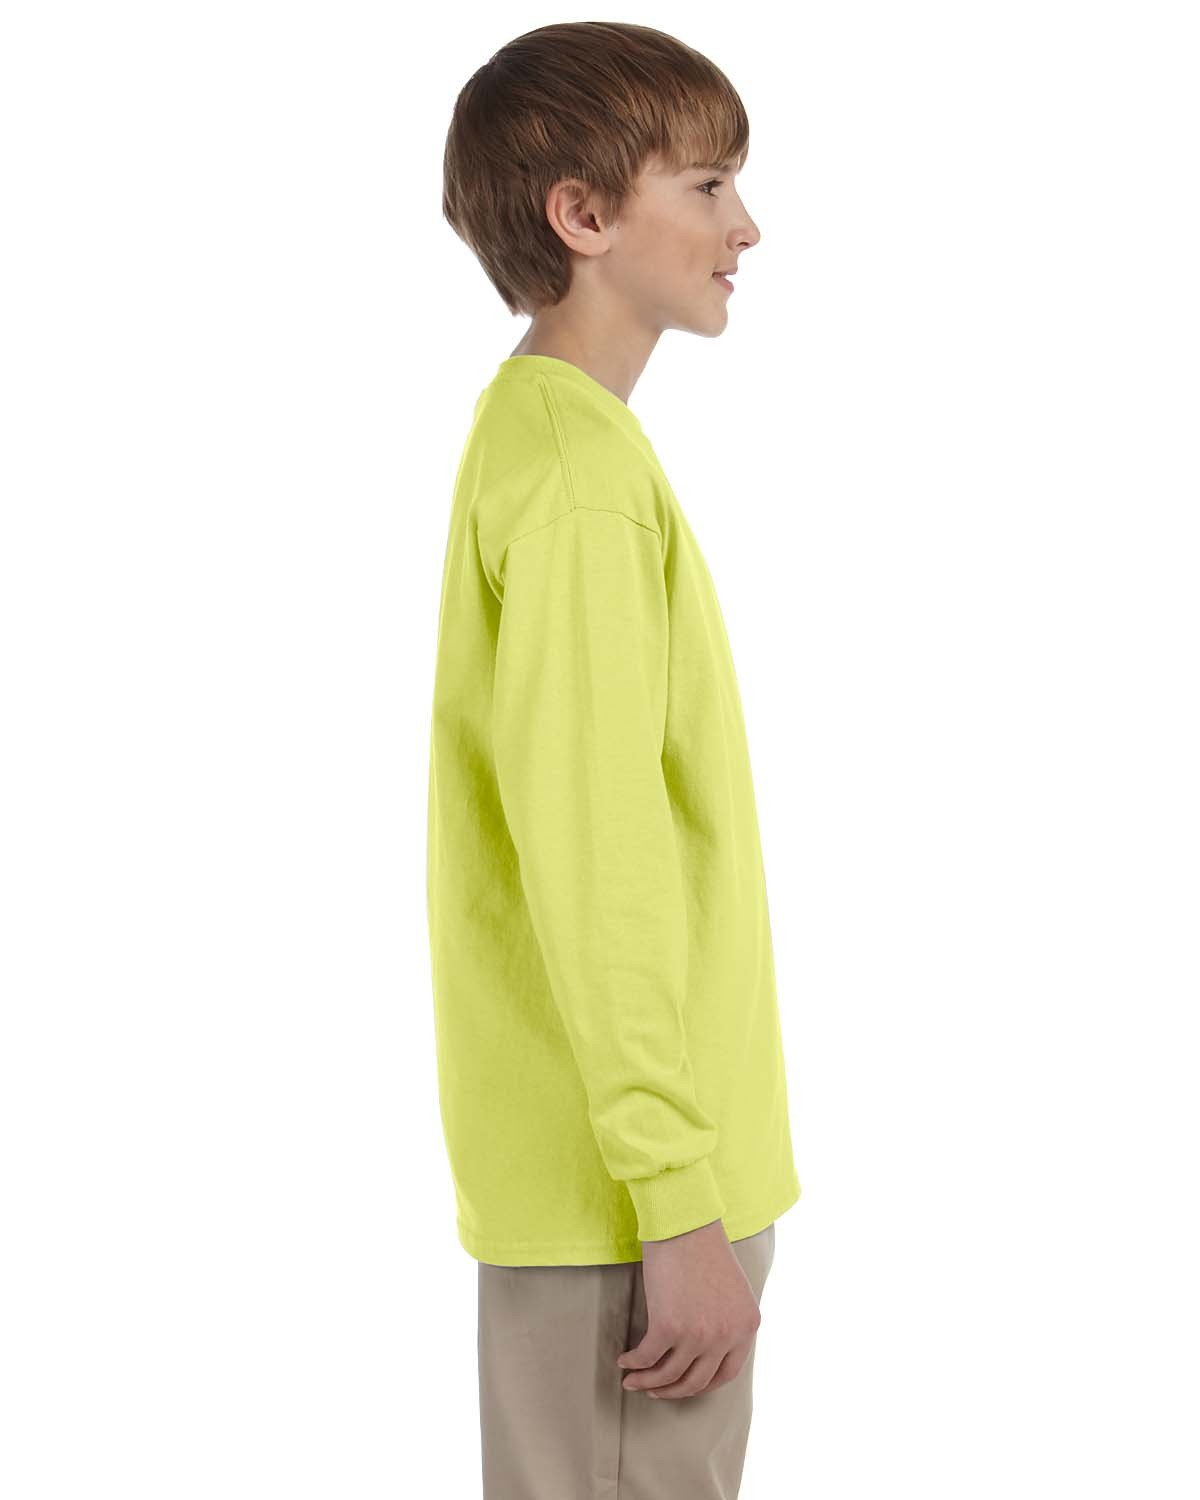 29BL Jerzees SAFETY GREEN